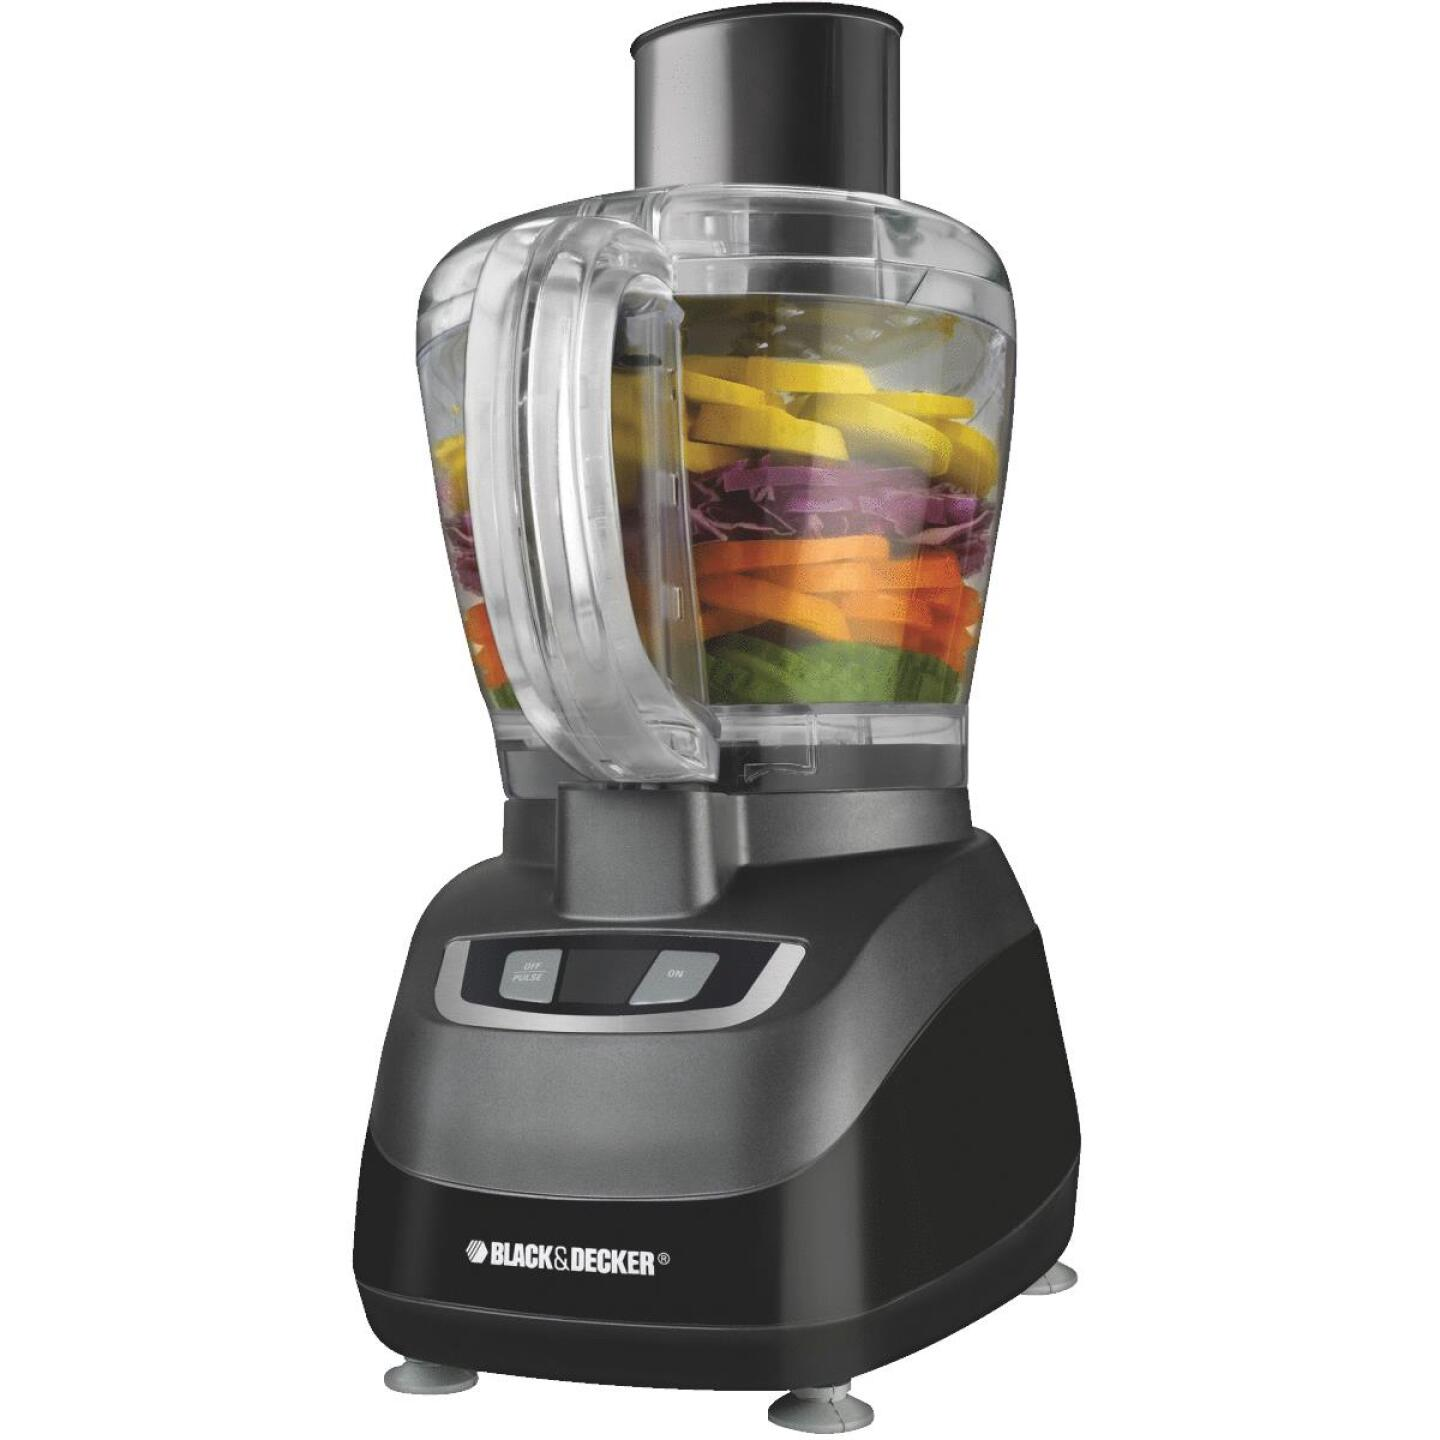 Black & Decker Quick 'N Easy 8-Cup Black Food Processor Image 1